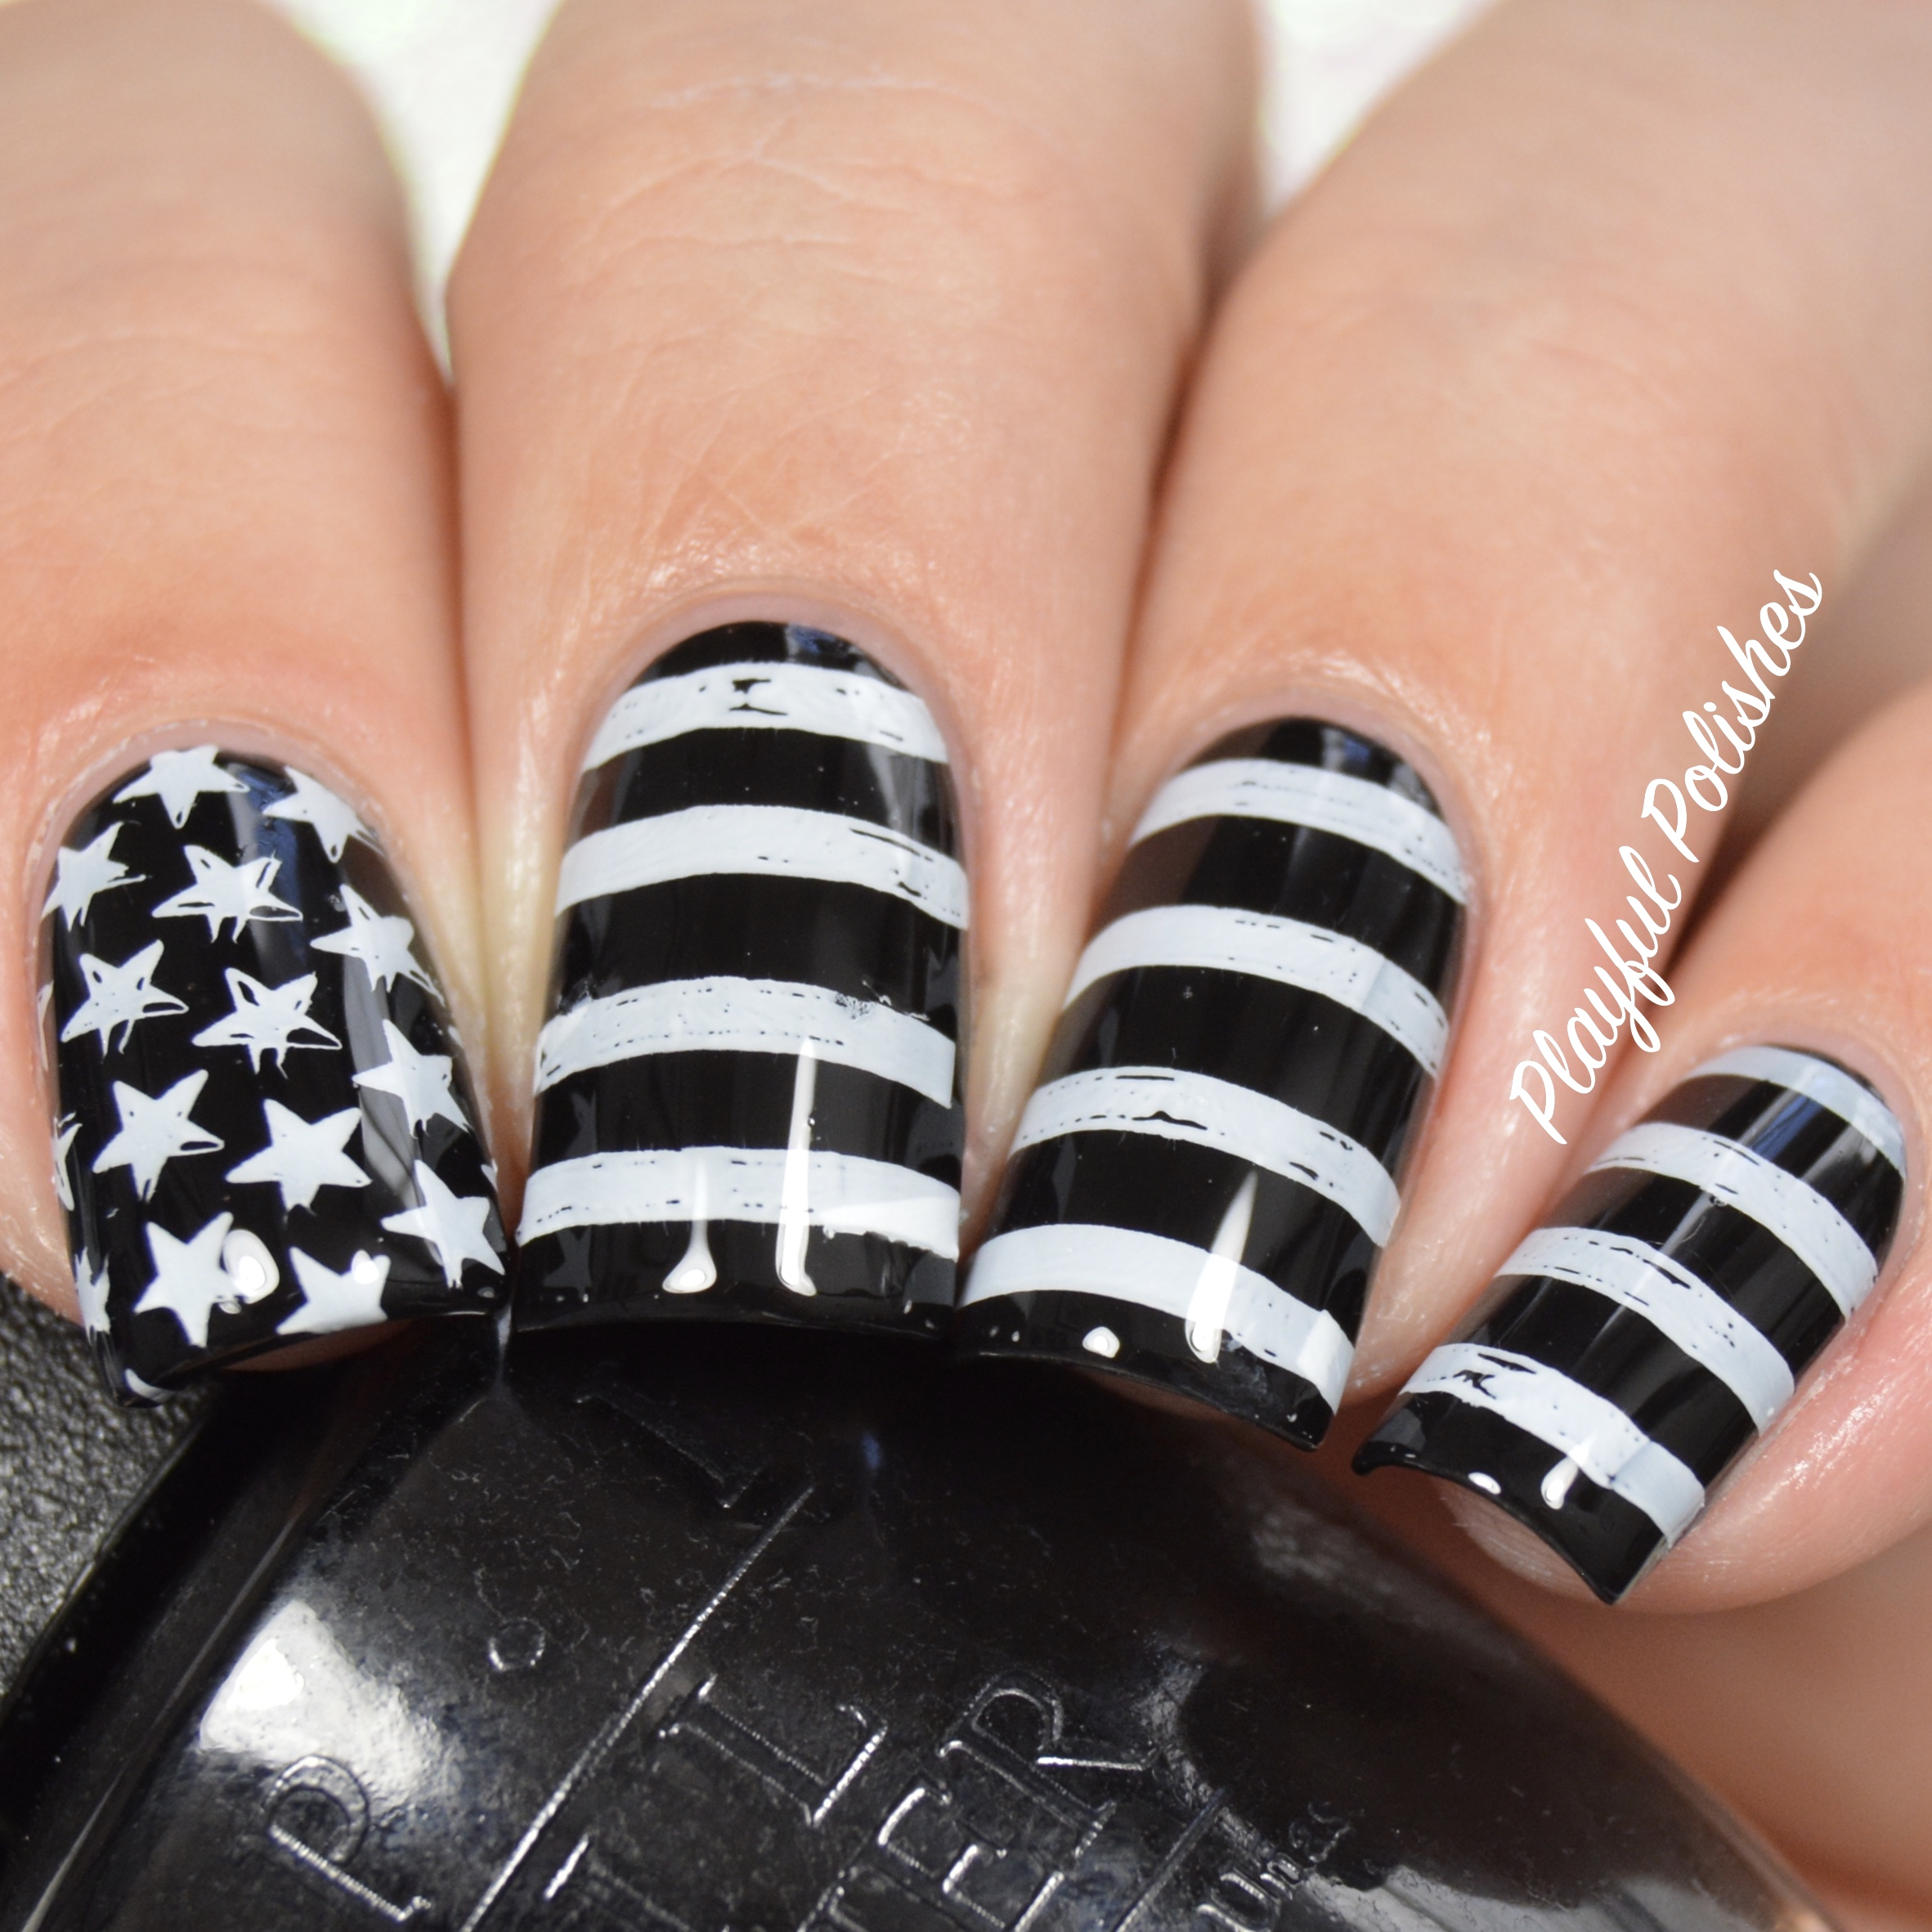 31DC2016 - Day 28, Inspired by a Flag nail art by Playful Polishes